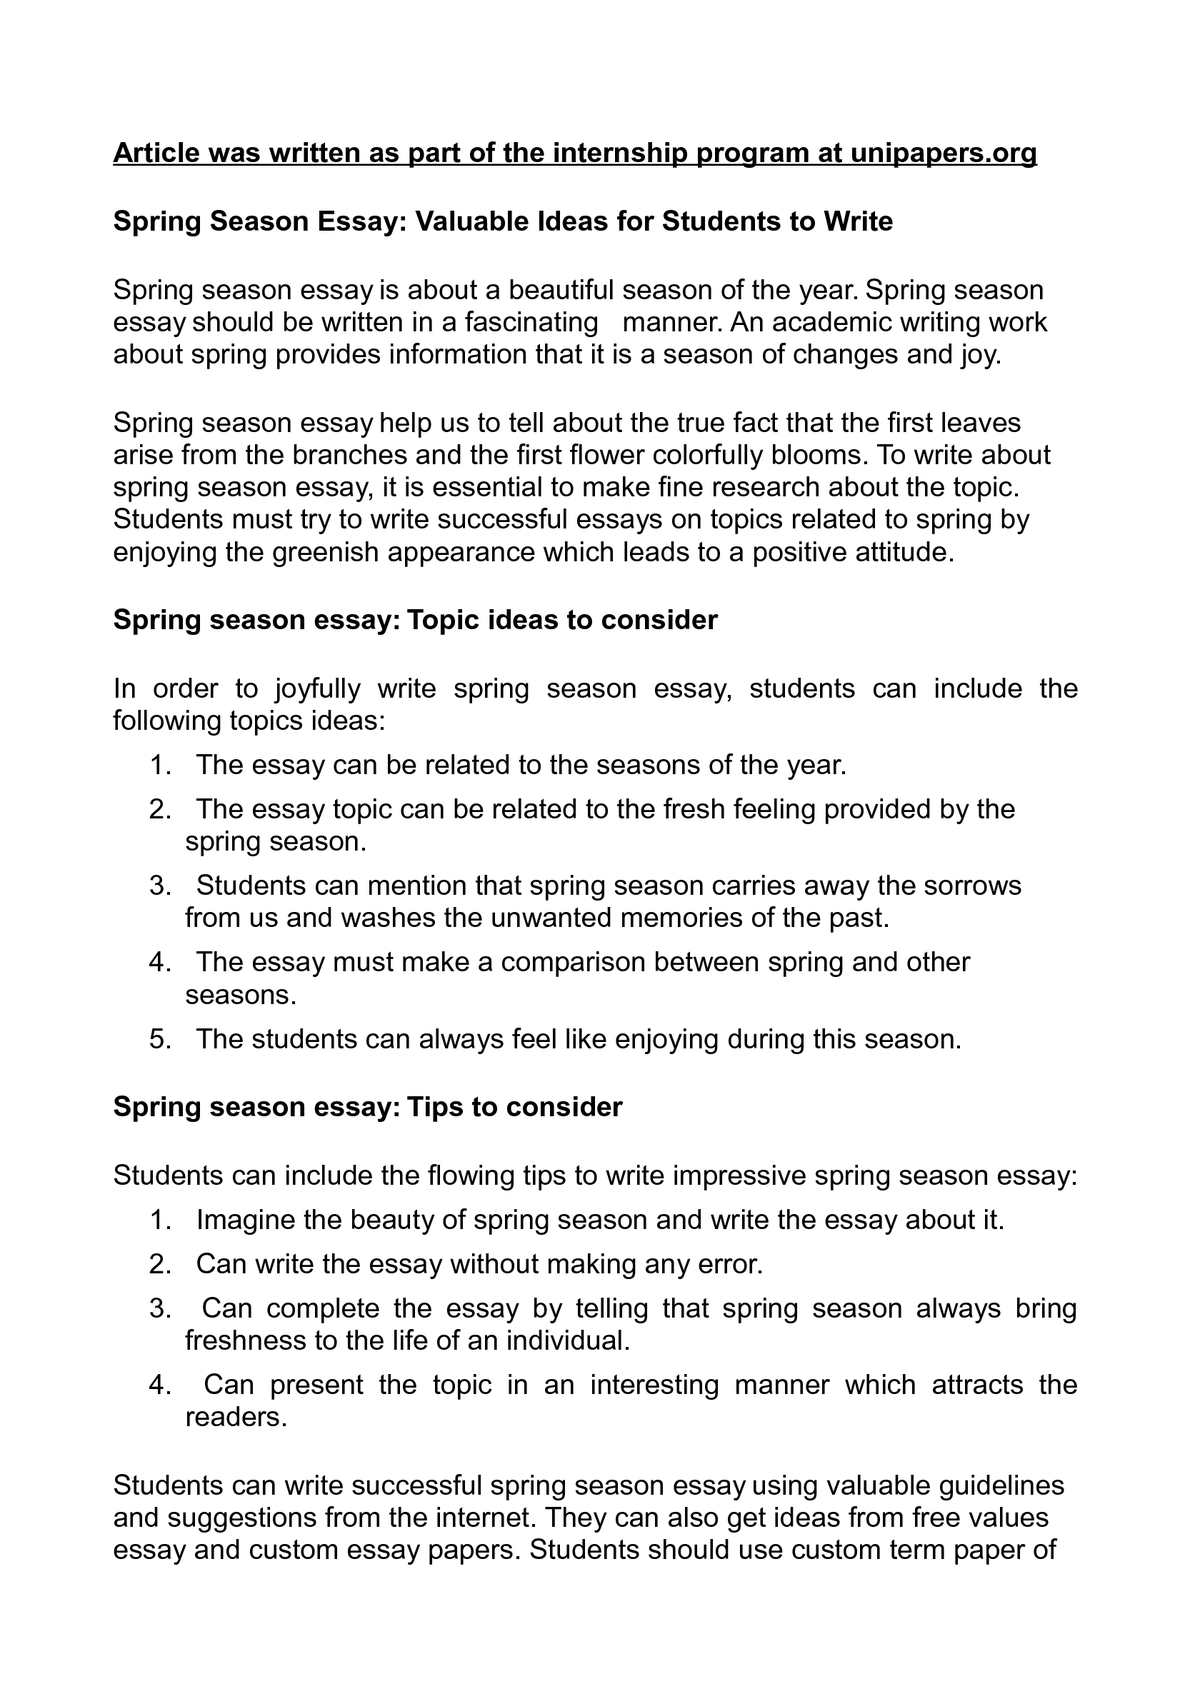 Essay on spring season